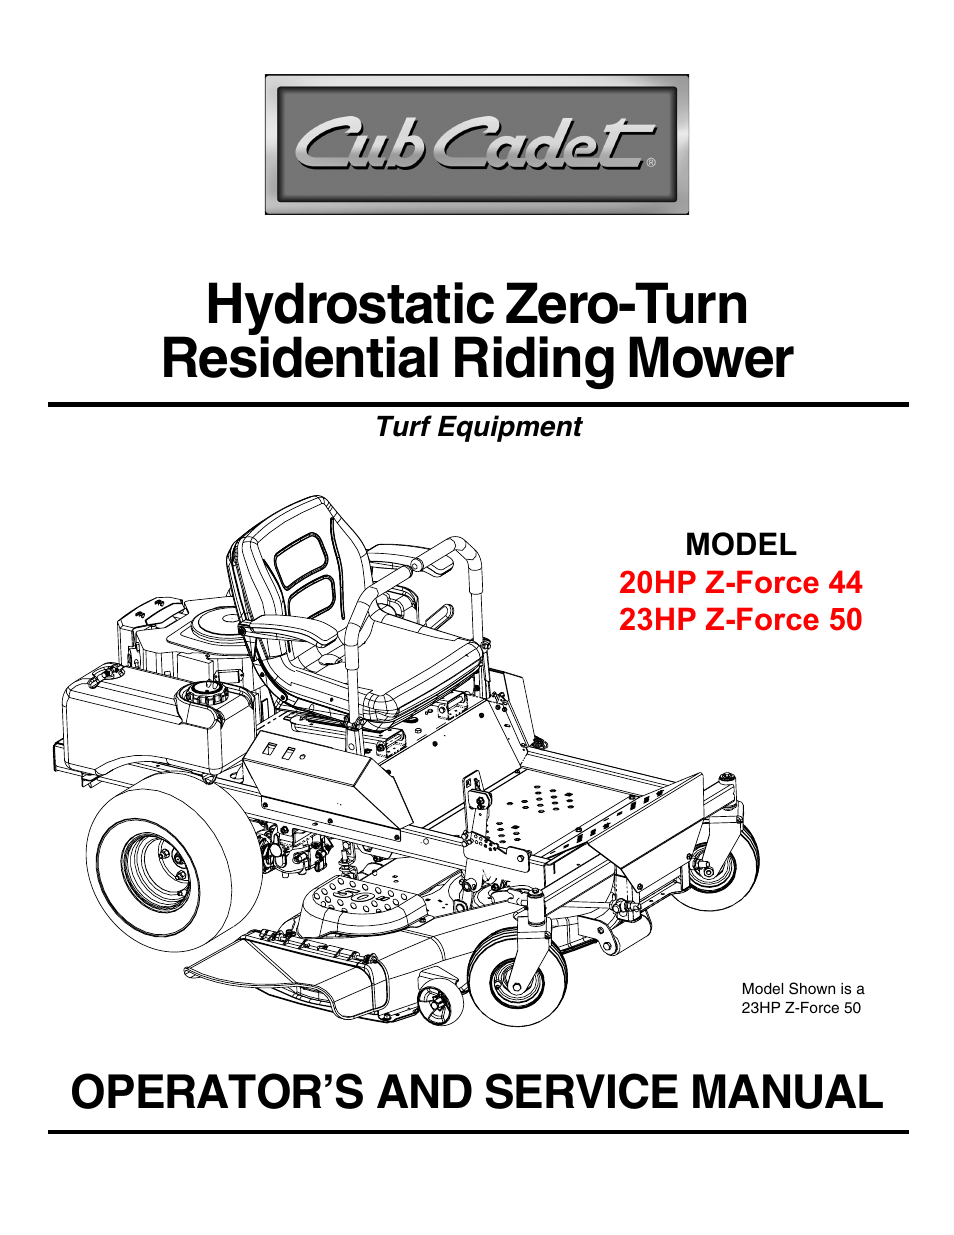 hight resolution of cub cadet 23hp z force 50 user manual 32 pages also for